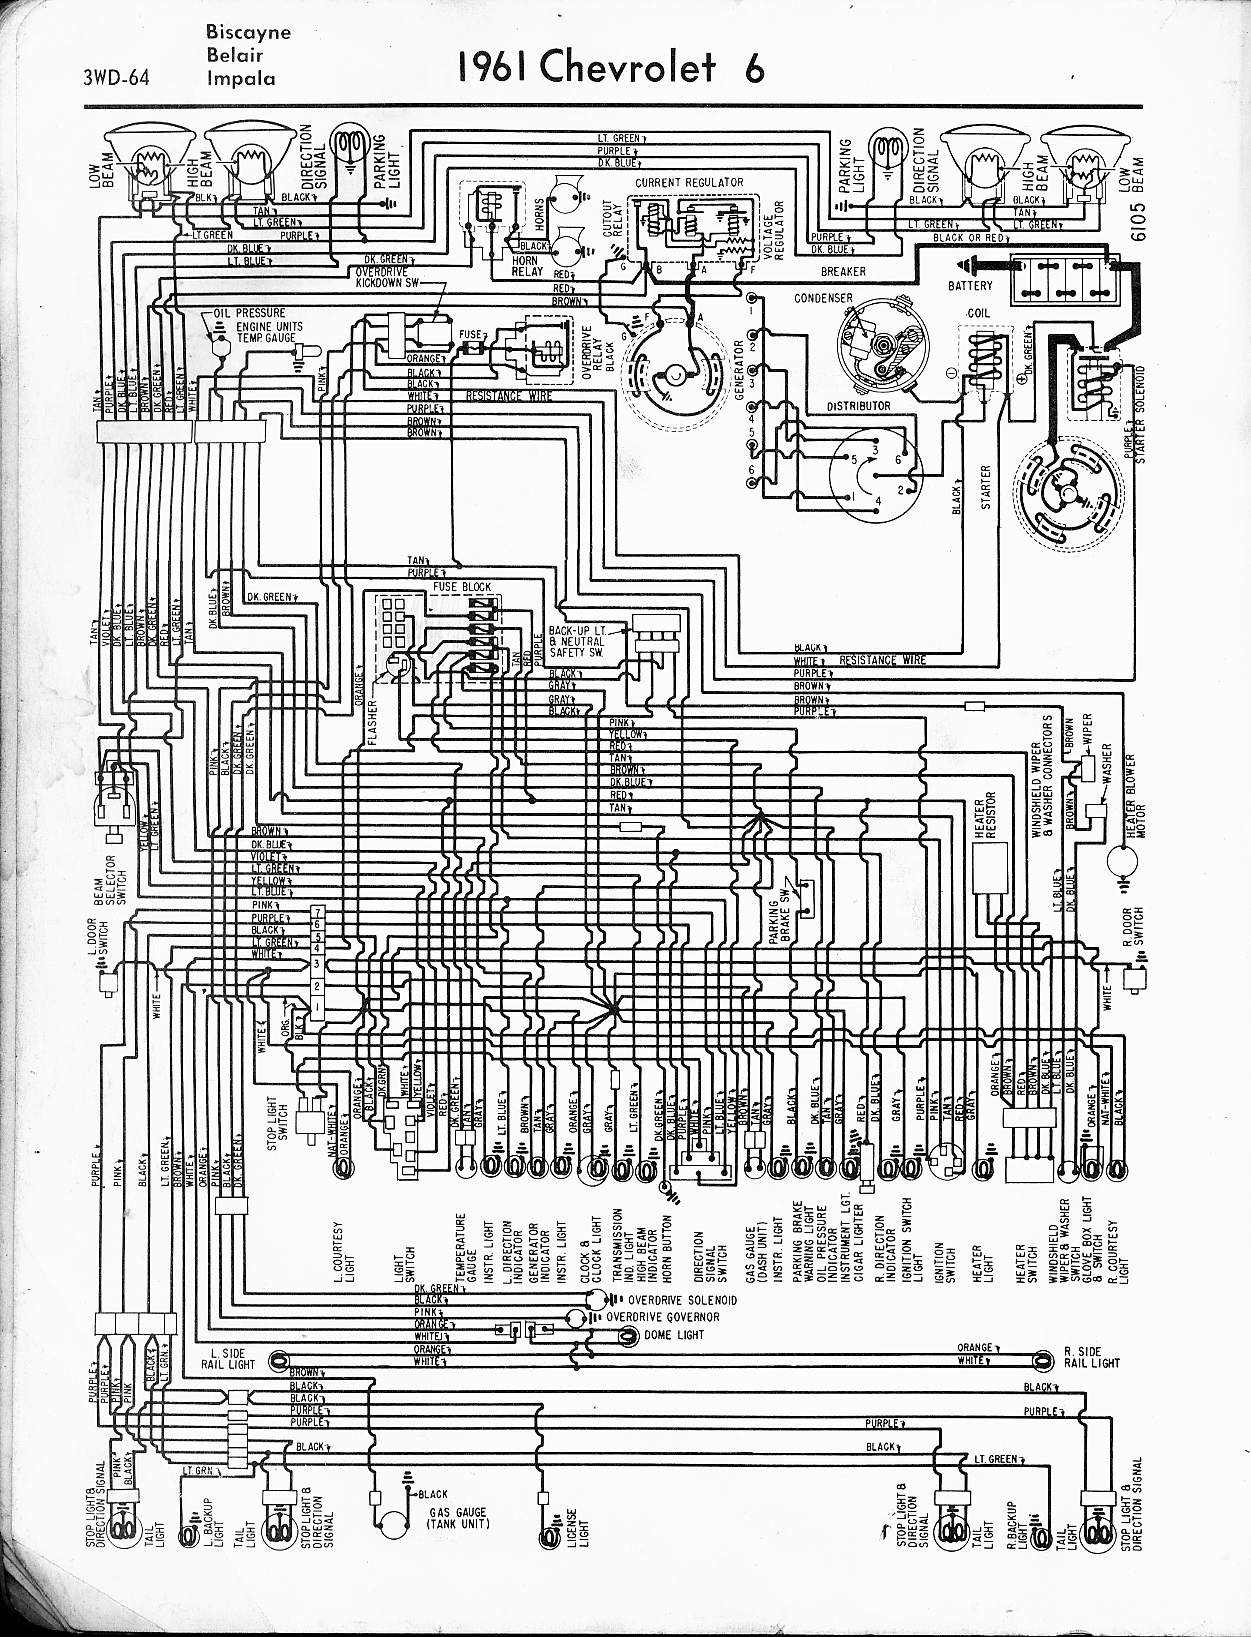 Wiring Diagram For 1961 Chevy Impala - Wiring Diagram All Data on 2002 toyota highlander wiring diagram, 2000 tahoe ls radio wiring diagram, 2000 chevy cavalier fuel pump wiring diagram, 2002 impala electrical diagram, 2002 mitsubishi galant wiring diagram, 2002 mitsubishi eclipse wiring diagram, 2002 chevy cavalier fuel pump wiring diagram, 2002 chevy cavalier light wiring diagram, 2002 chevy silverado 2500hd wiring diagram, 2002 impala radio wiring diagram, 2000 chevy silverado ignition wiring diagram, 2002 chevy express wiring diagram, 2000 chevy impala wiring diagram, 2002 chevy astro wiring diagram, 2002 cadillac escalade wiring diagram, 2003 chevy silverado ignition wiring diagram, 1964 chevy wiring diagram, 2002 chevy silverado ignition module, 2002 chevy trailblazer 4x4 wiring diagram, 2000 chevy impala door diagram,